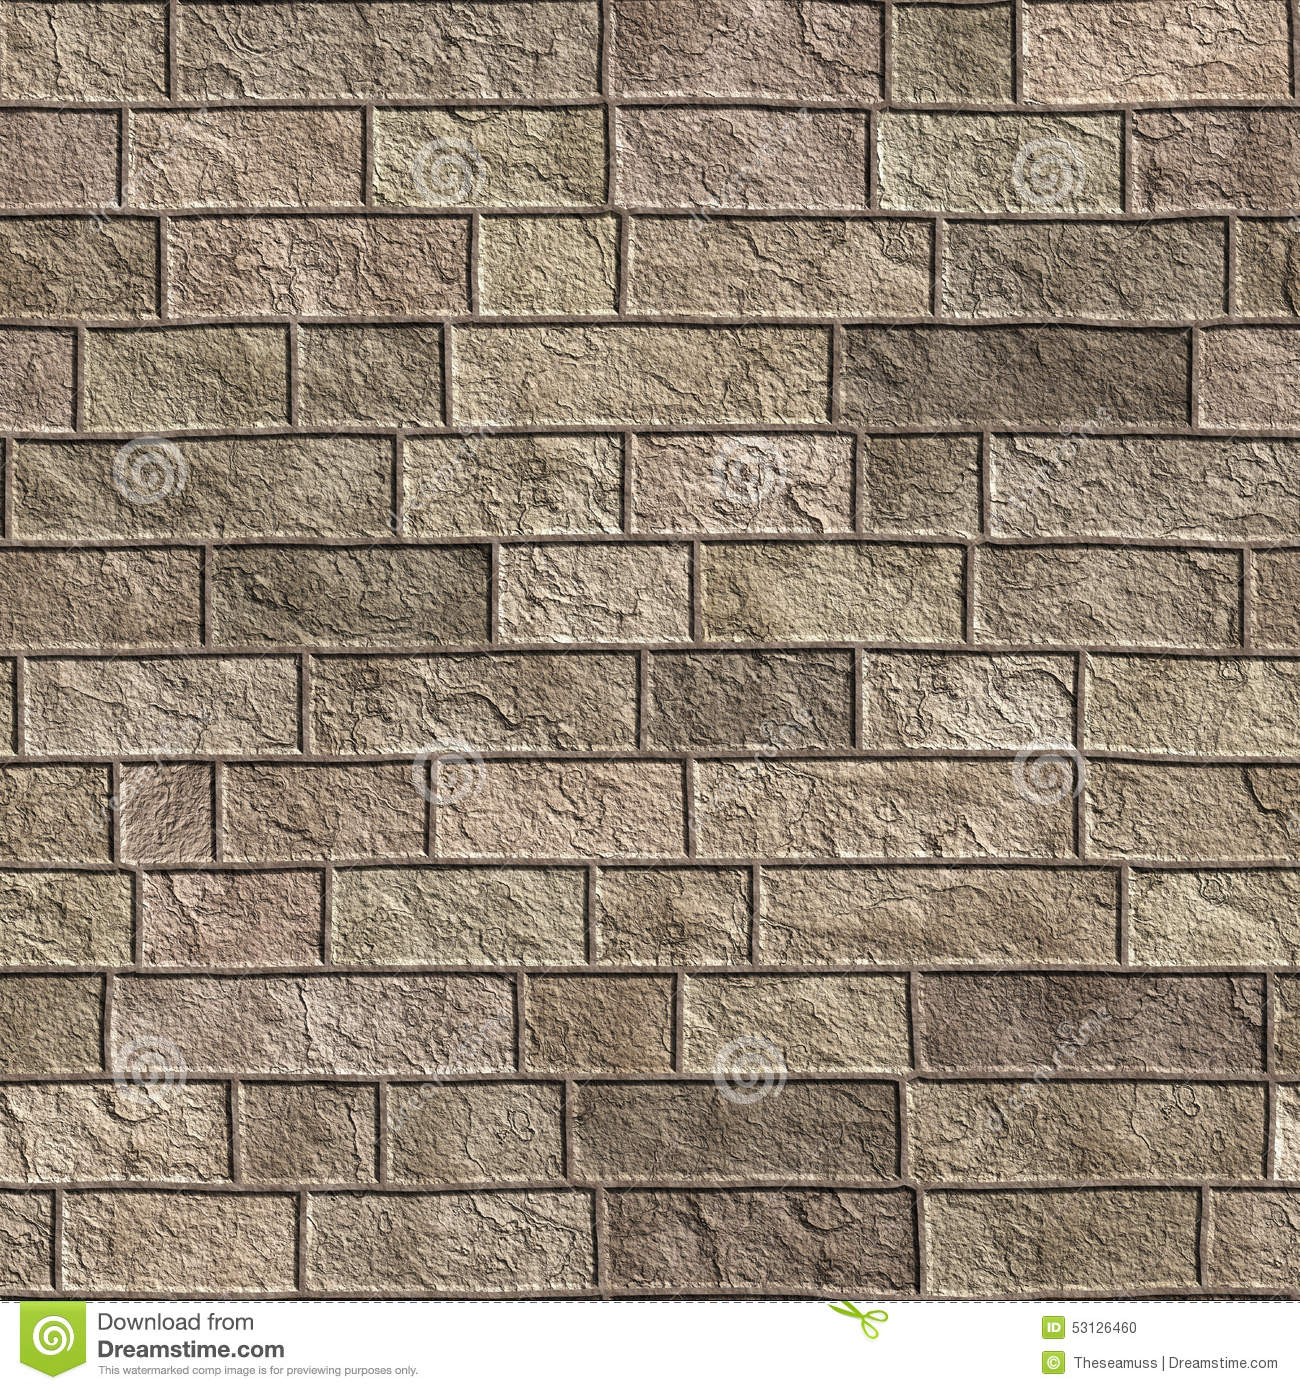 Seamless brick texture (wall background